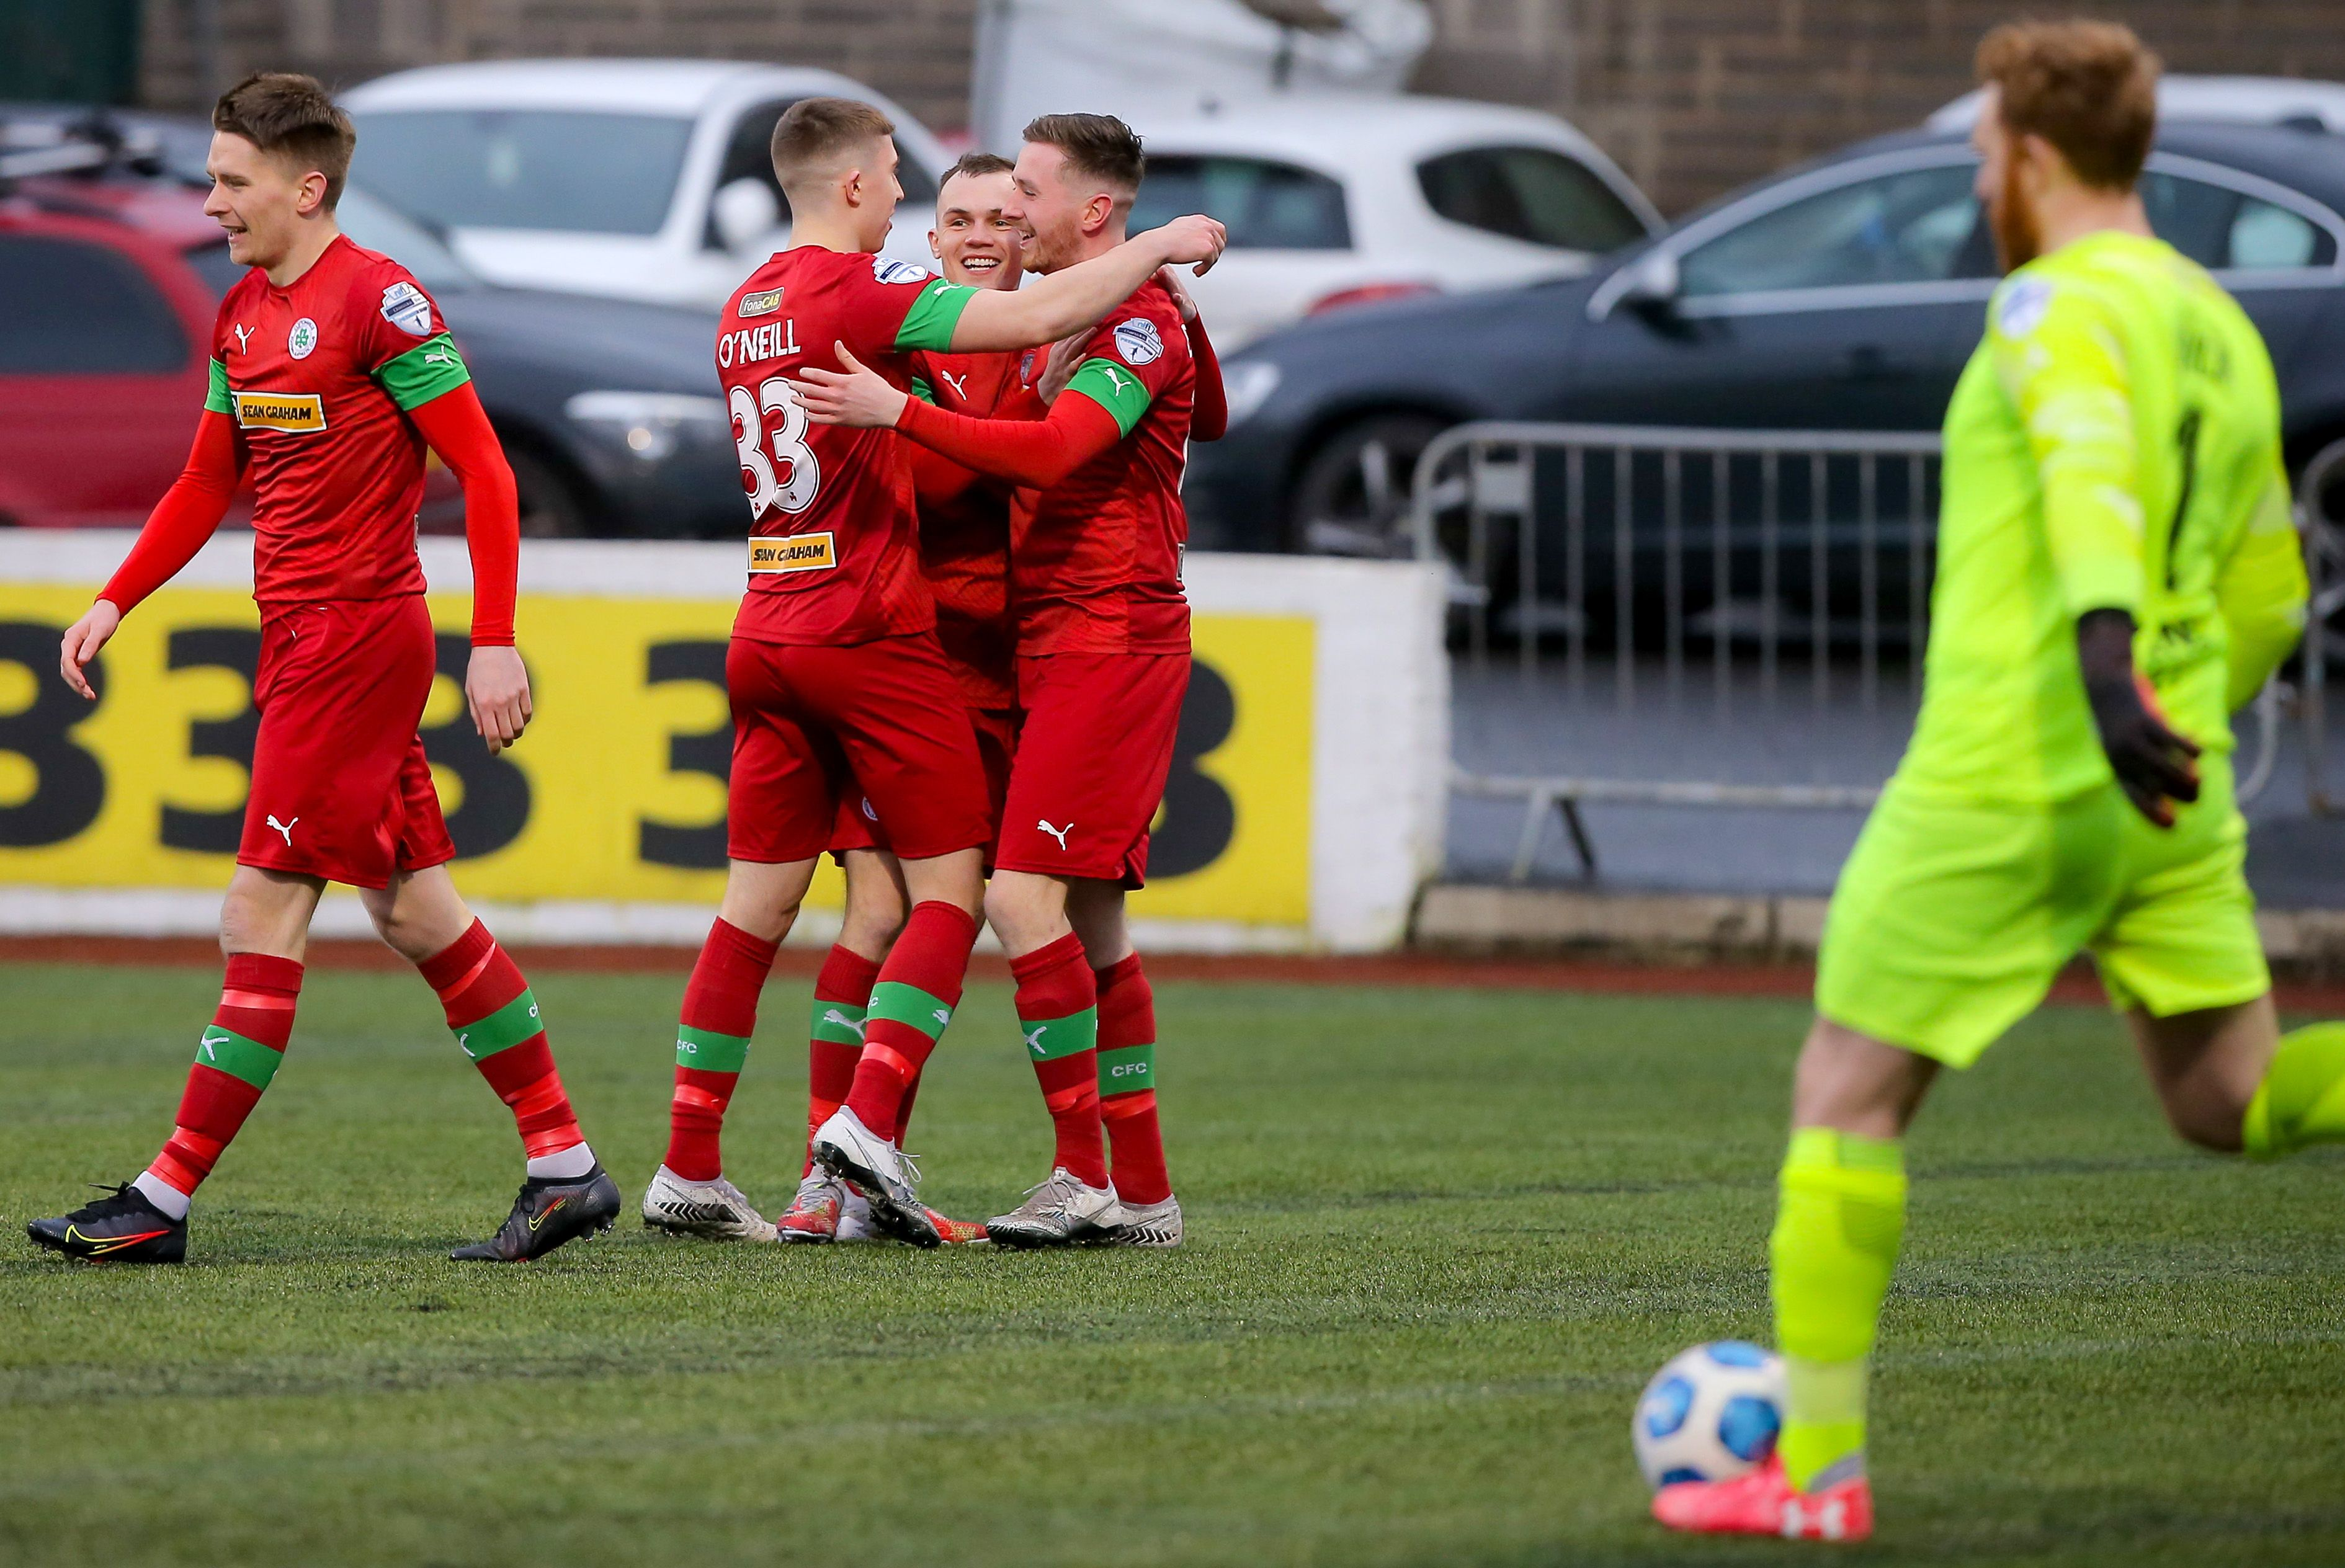 Ronan Doherty celebrates scoring the only goal of the game